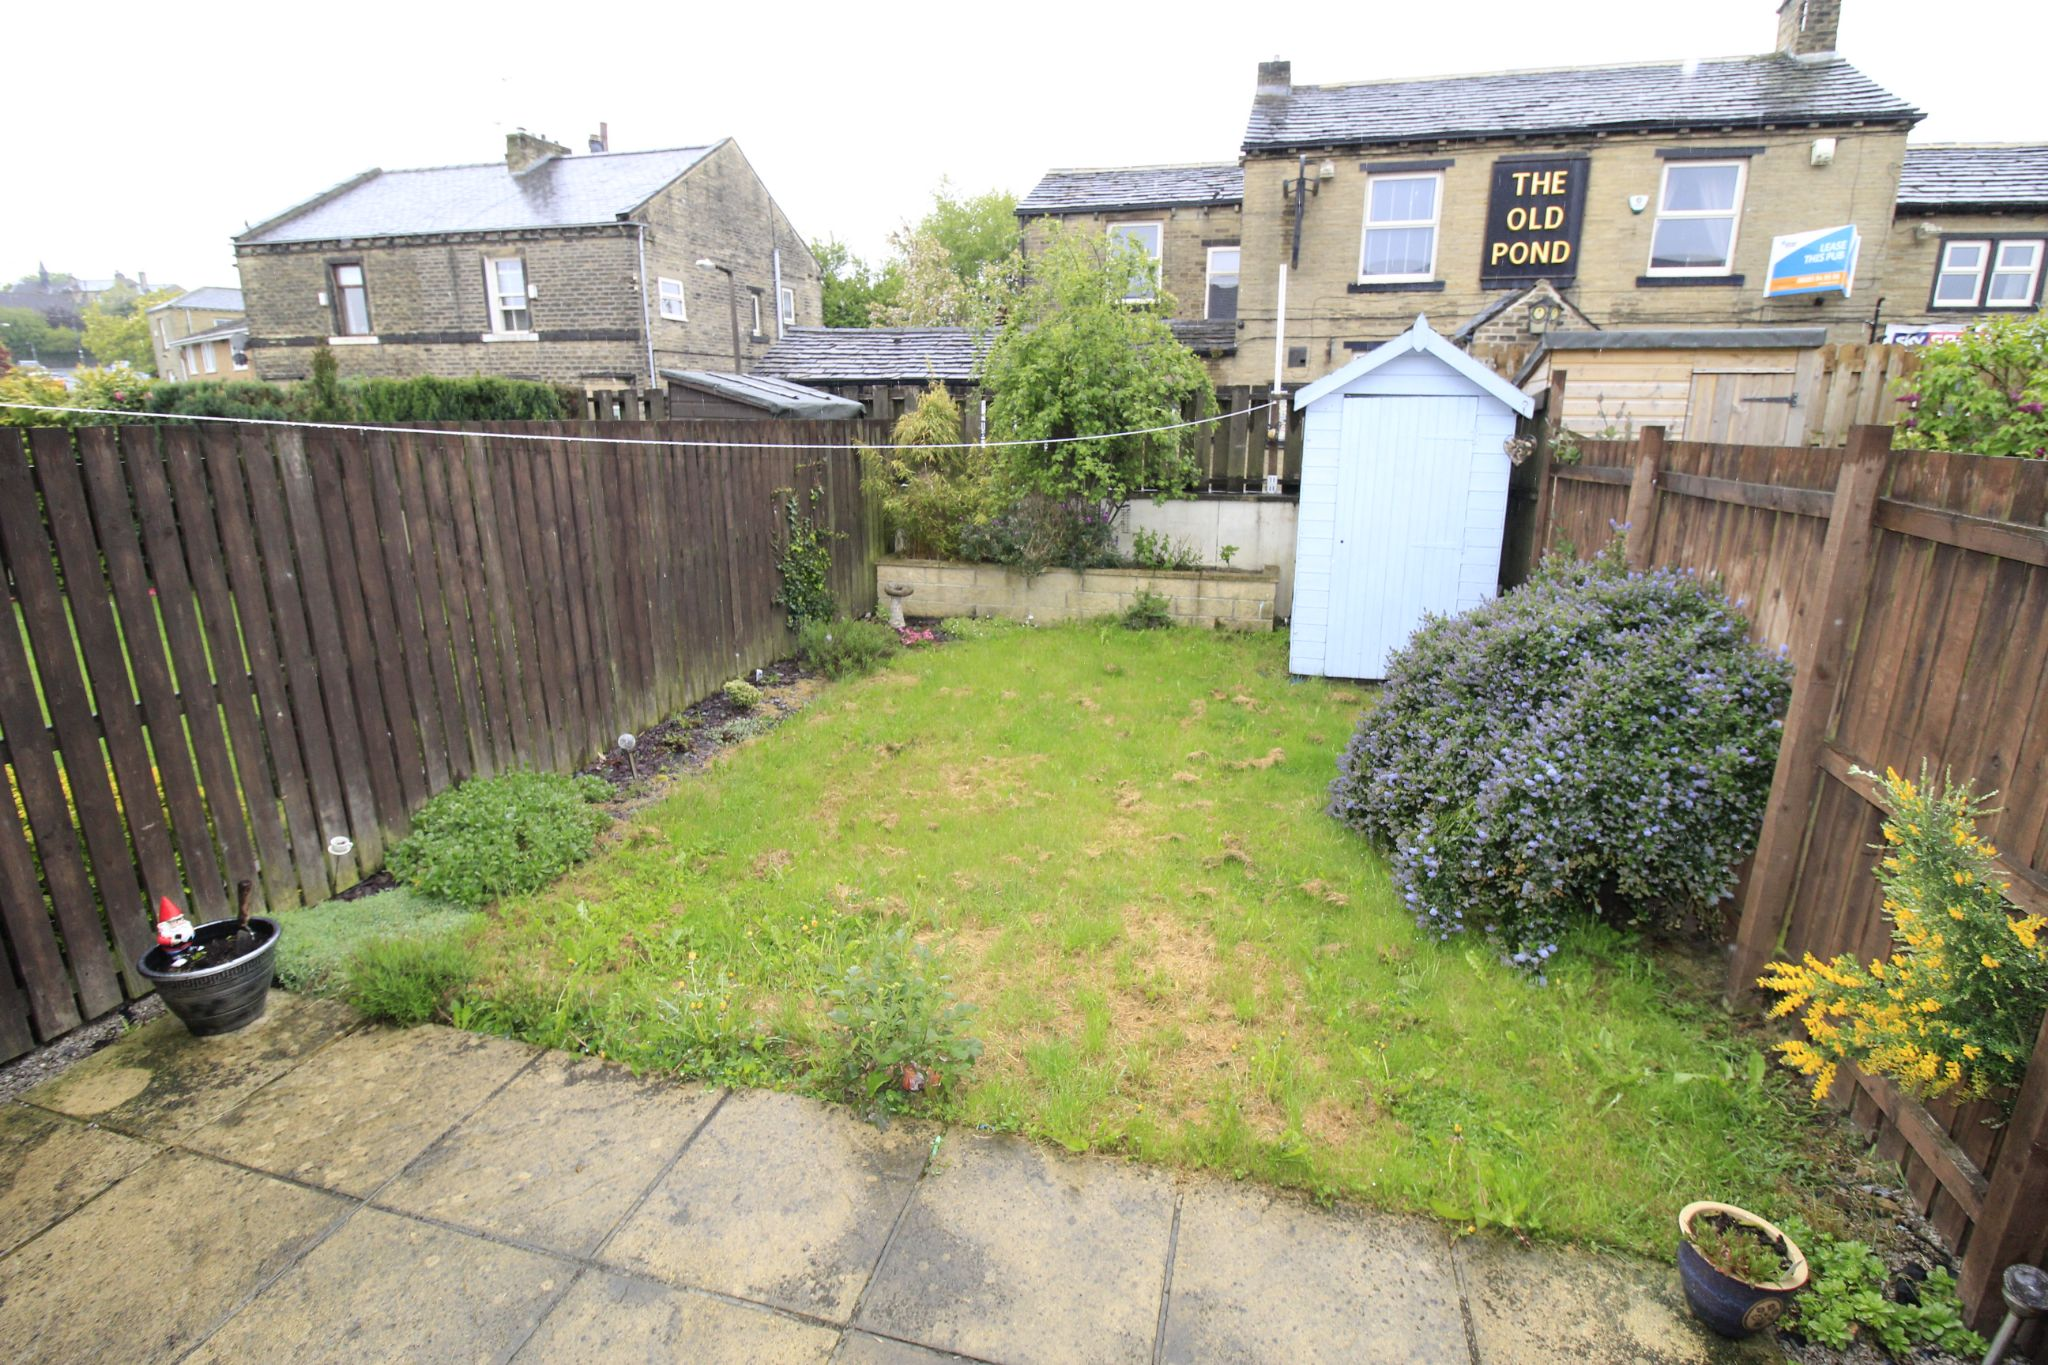 3 bedroom mid terraced house Let Agreed in Brighouse - Garden